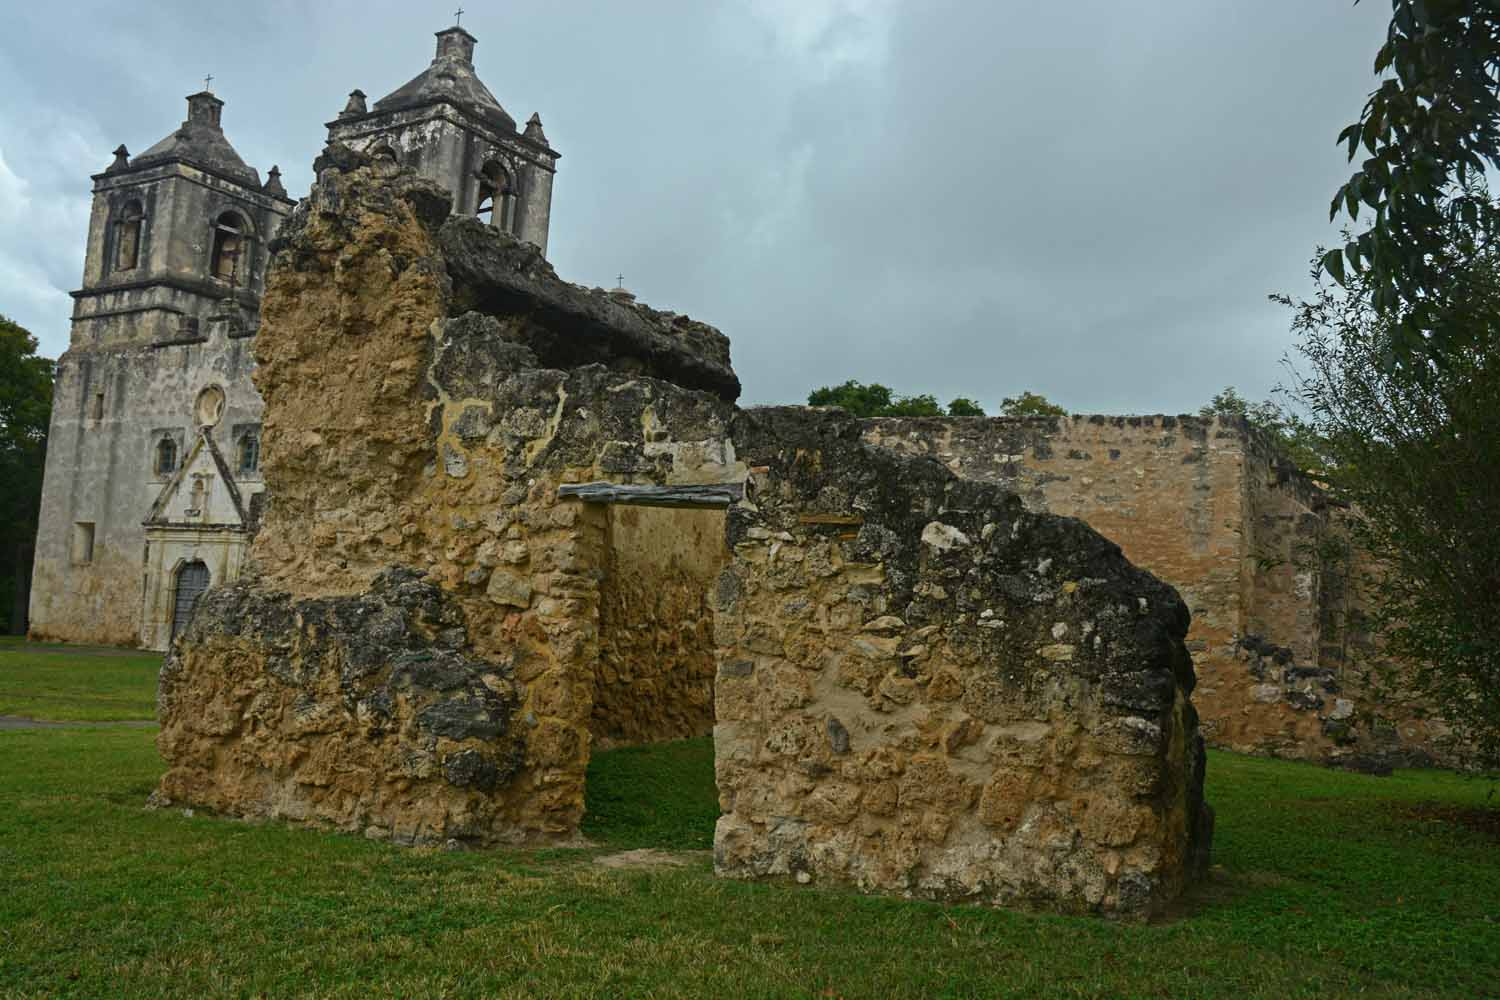 Touring the Missions exceeded expectations. It was great seeing all the old buildings even on a rainy day.